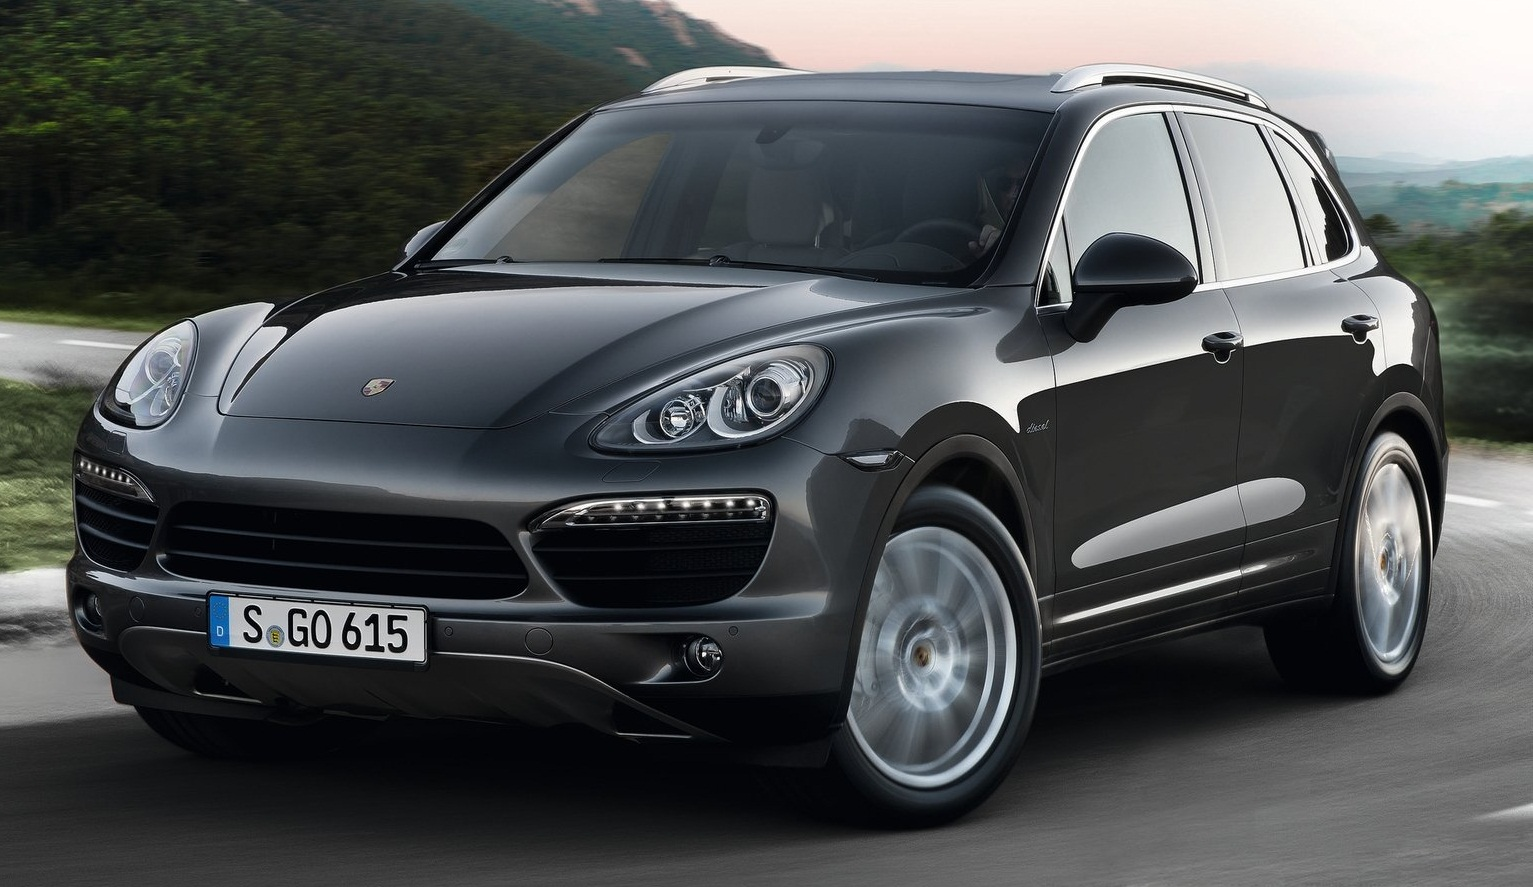 2013 porsche cayenne s diesel fixcars cars news reviews new used updates road tests and. Black Bedroom Furniture Sets. Home Design Ideas